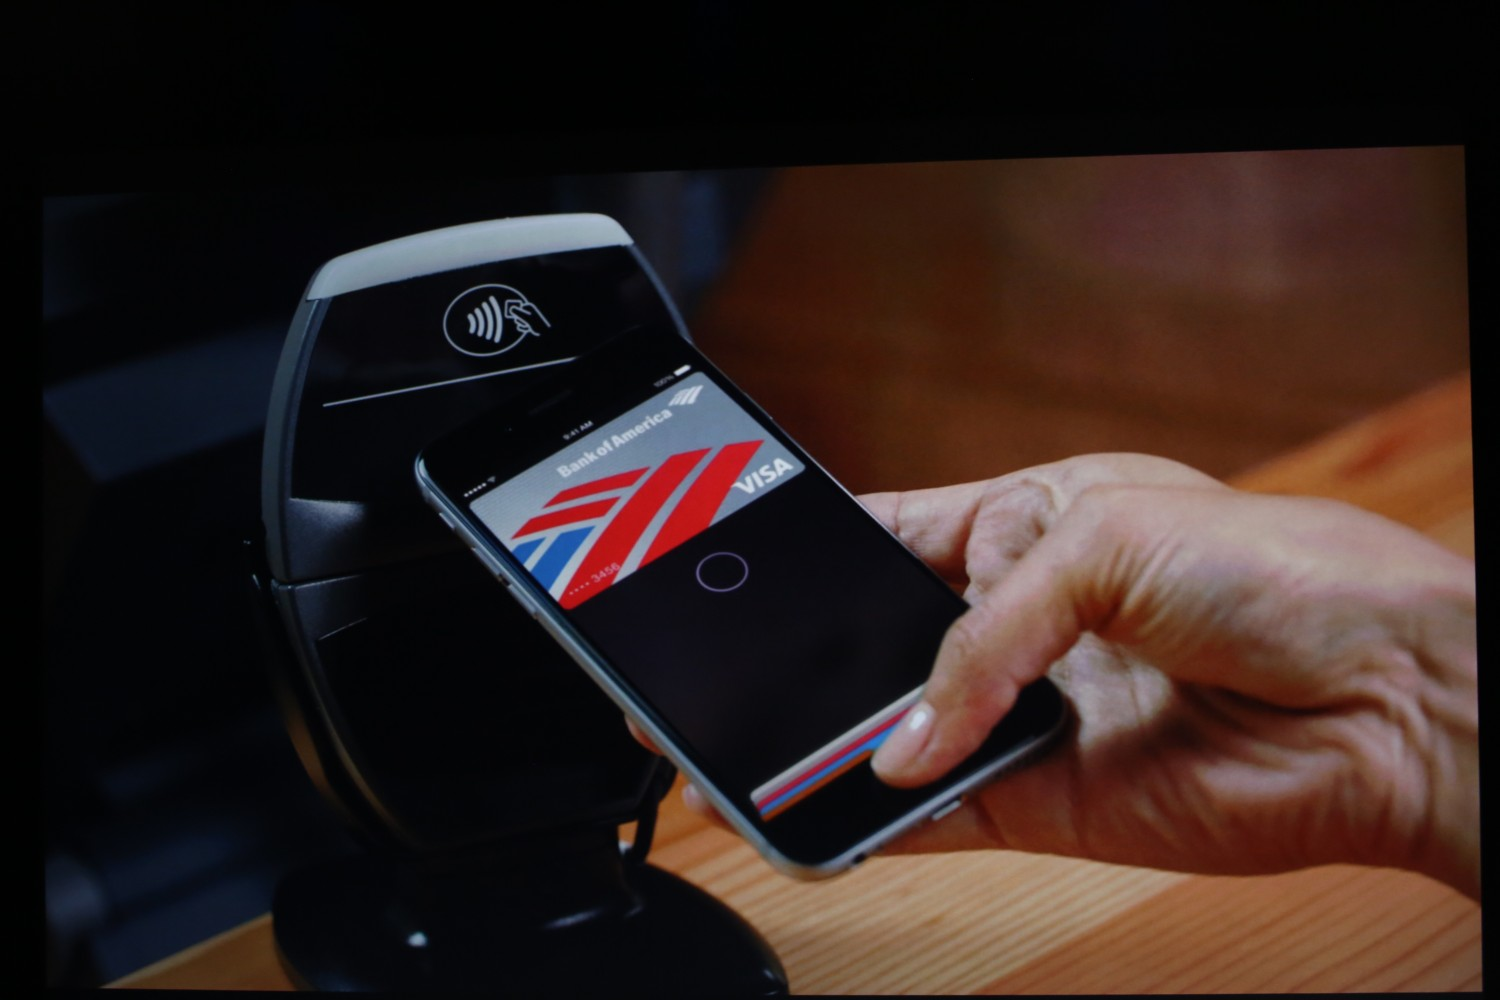 US Retailers Disabling NFC Readers to Block Apple Pay